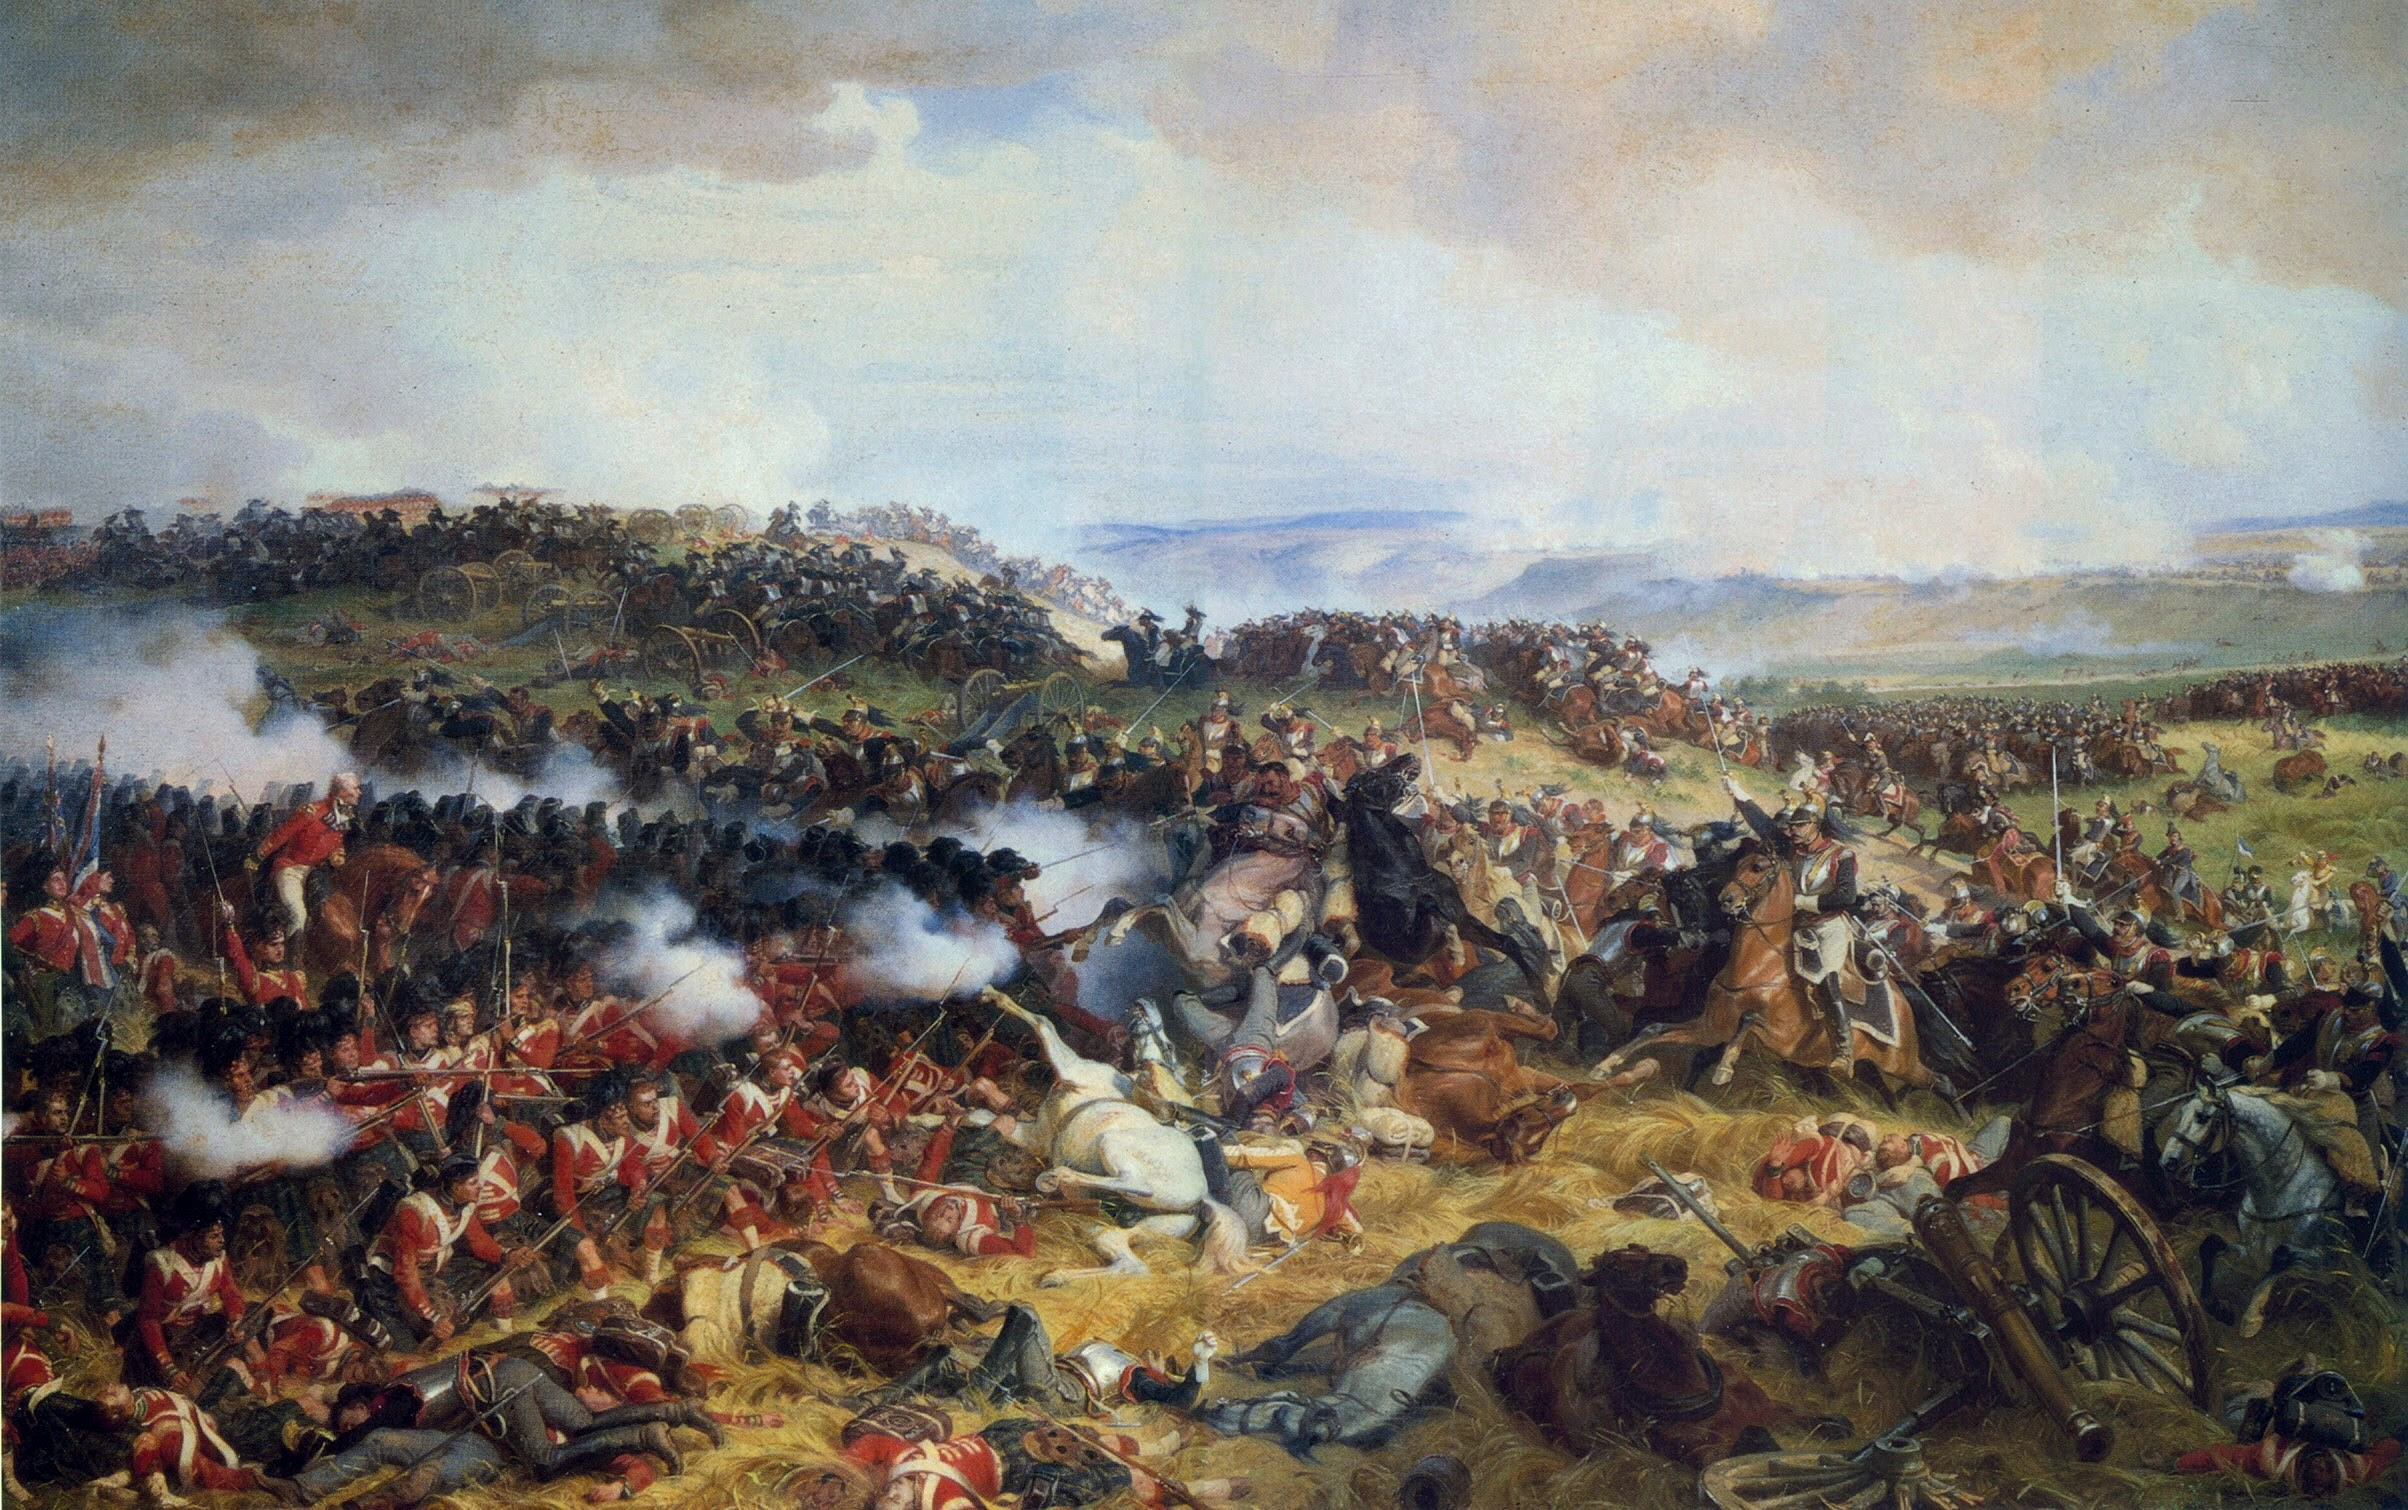 http://upload.wikimedia.org/wikipedia/commons/7/7a/Charge_of_the_French_Cuirassiers_at_Waterloo.jpg